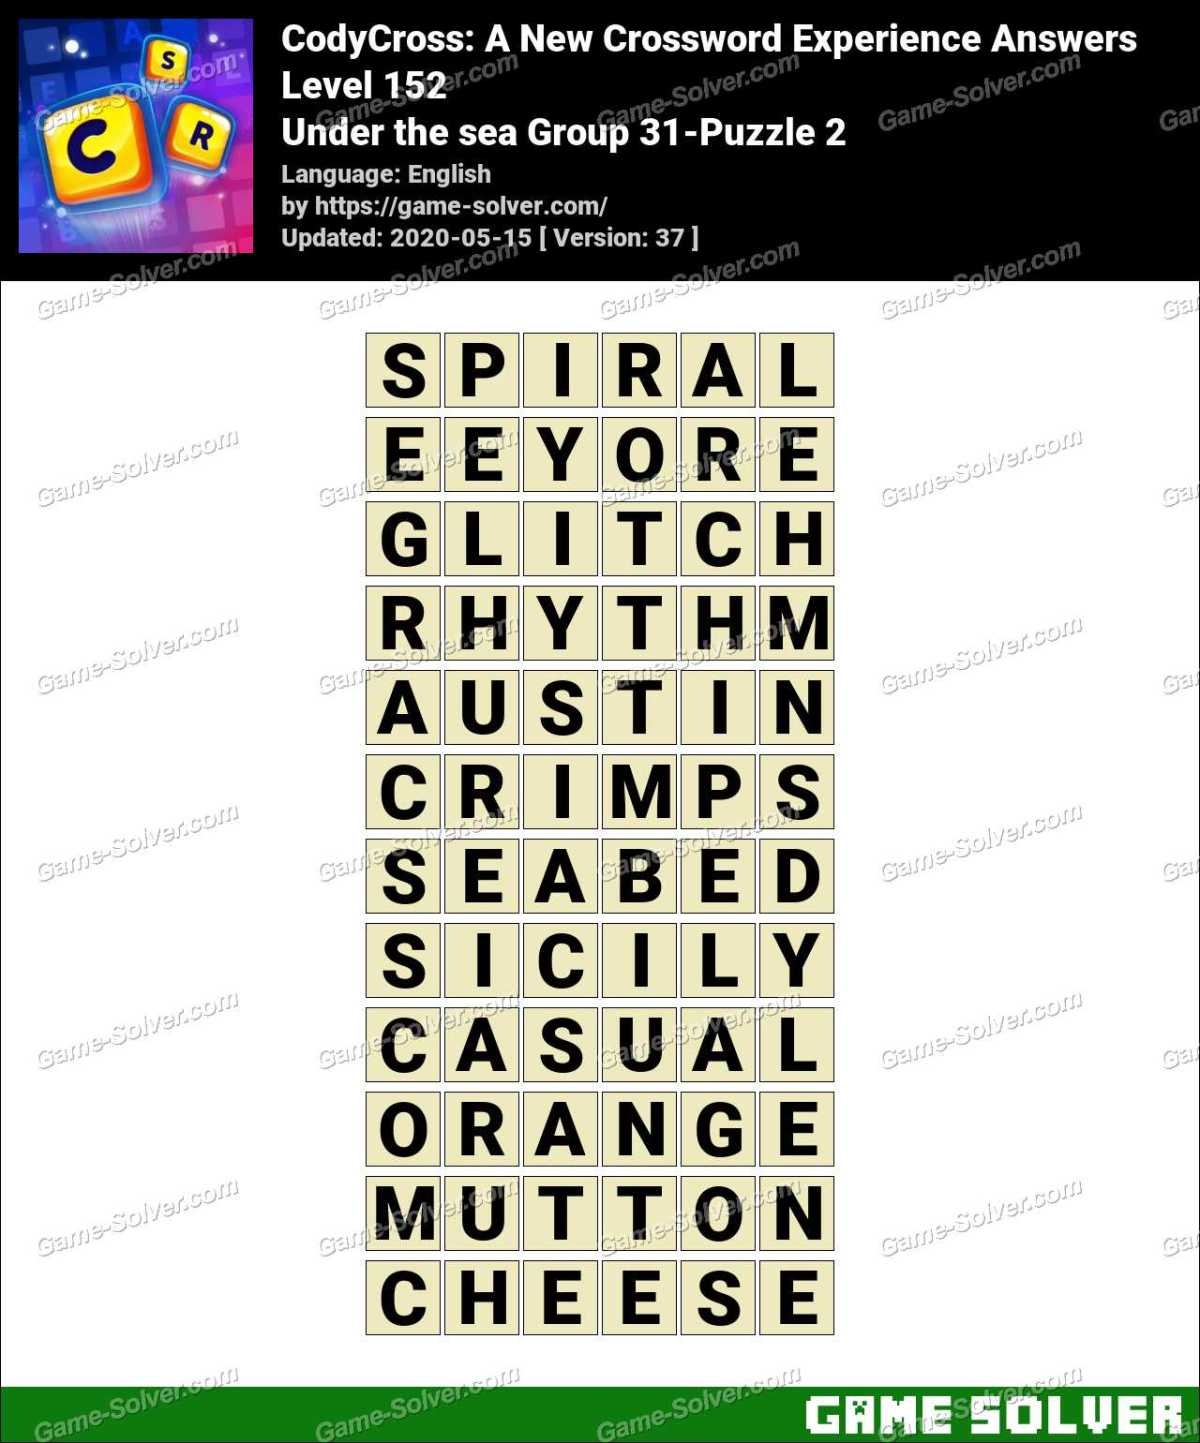 CodyCross Under the sea Group 31-Puzzle 2 Answers